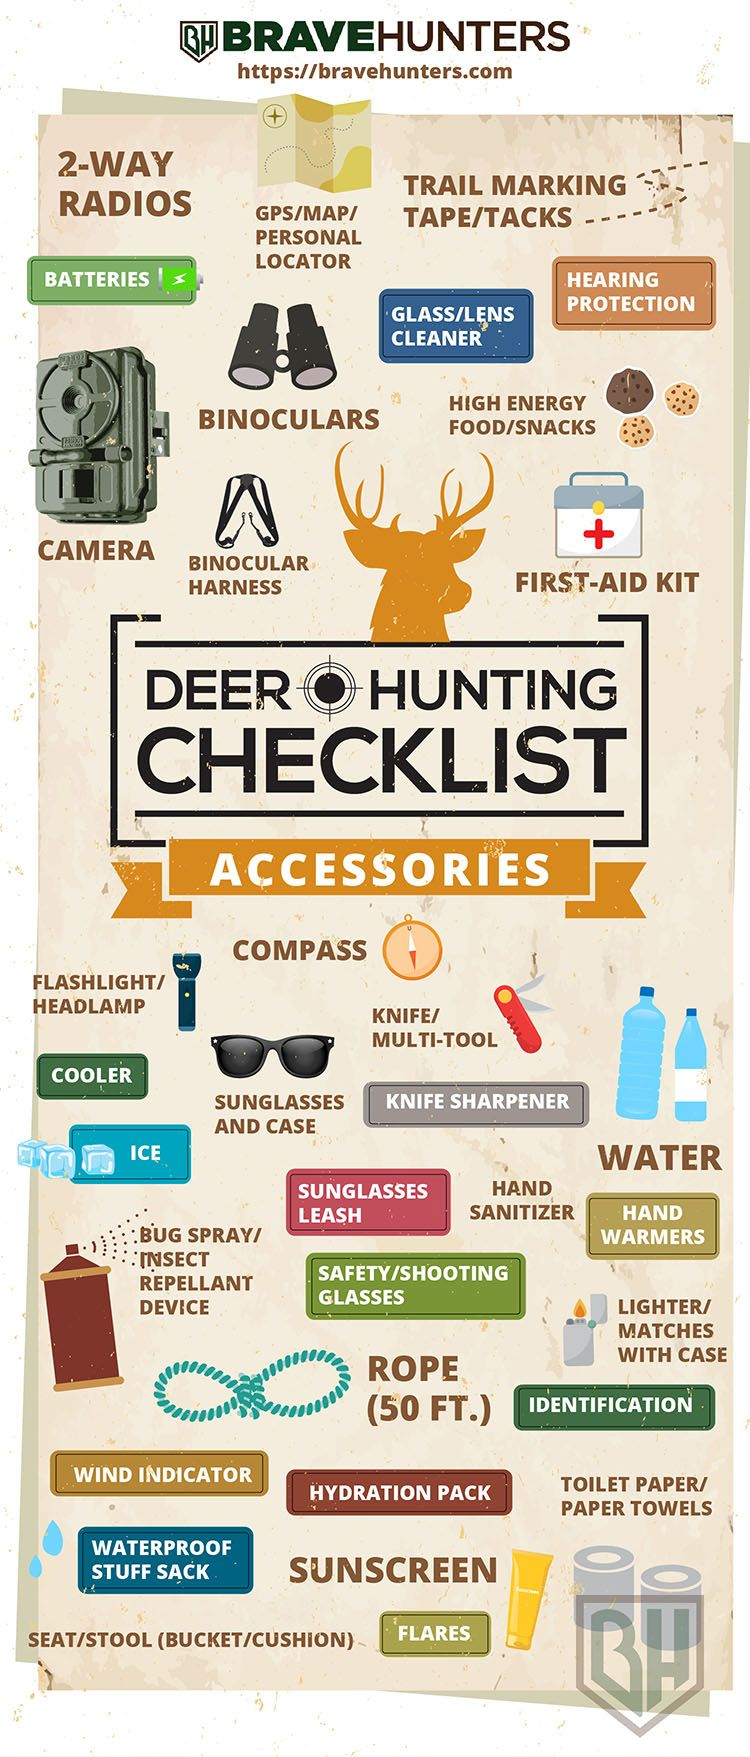 Deer Hunting Checklist  Accesories  Infographic  Deer Season